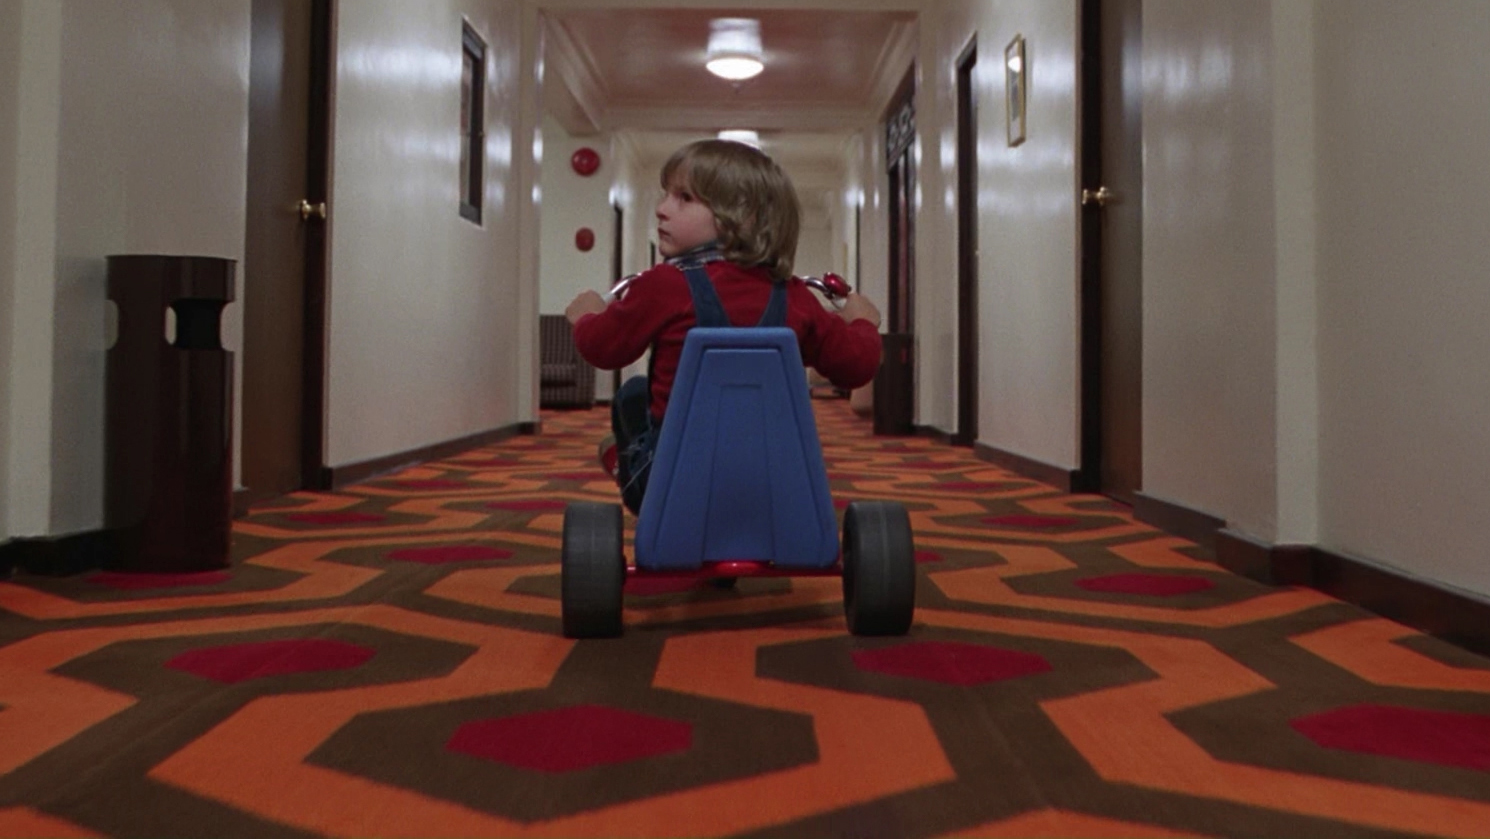 Room 237 Film Obsessives Check In But They Don T Check